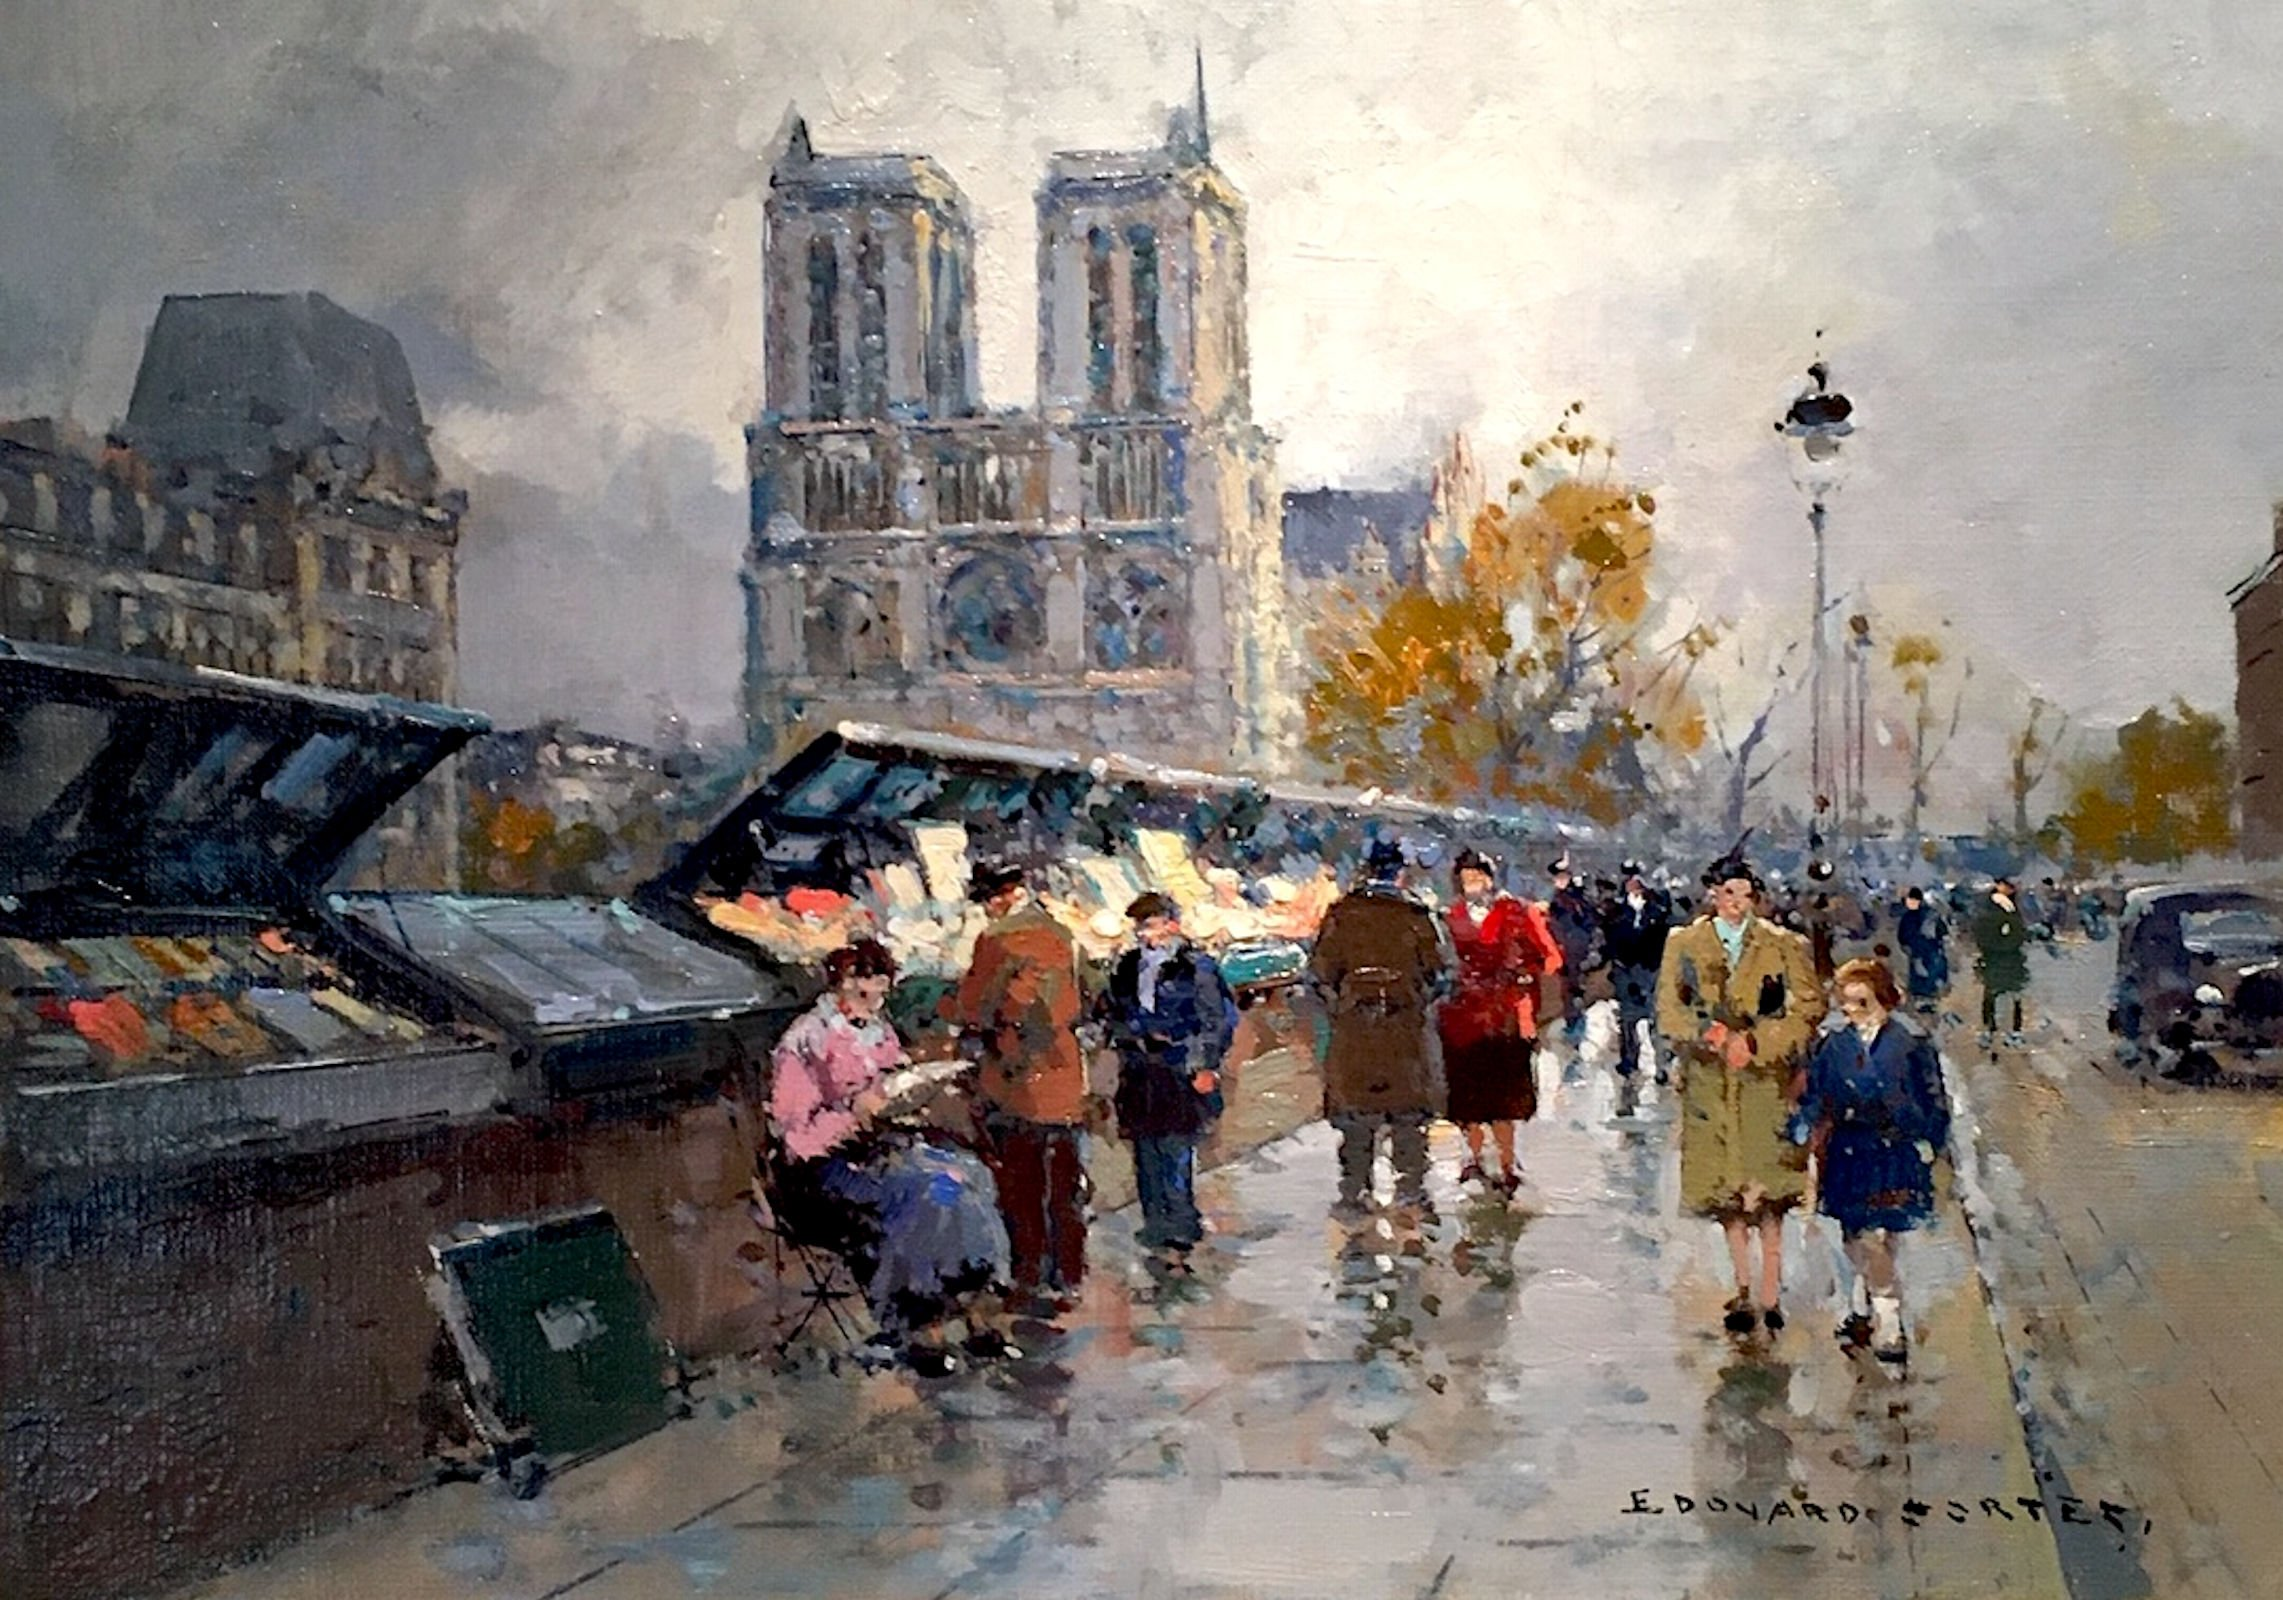 A street with stalls on the side and pedestrians walking past with Notre Dame in the background